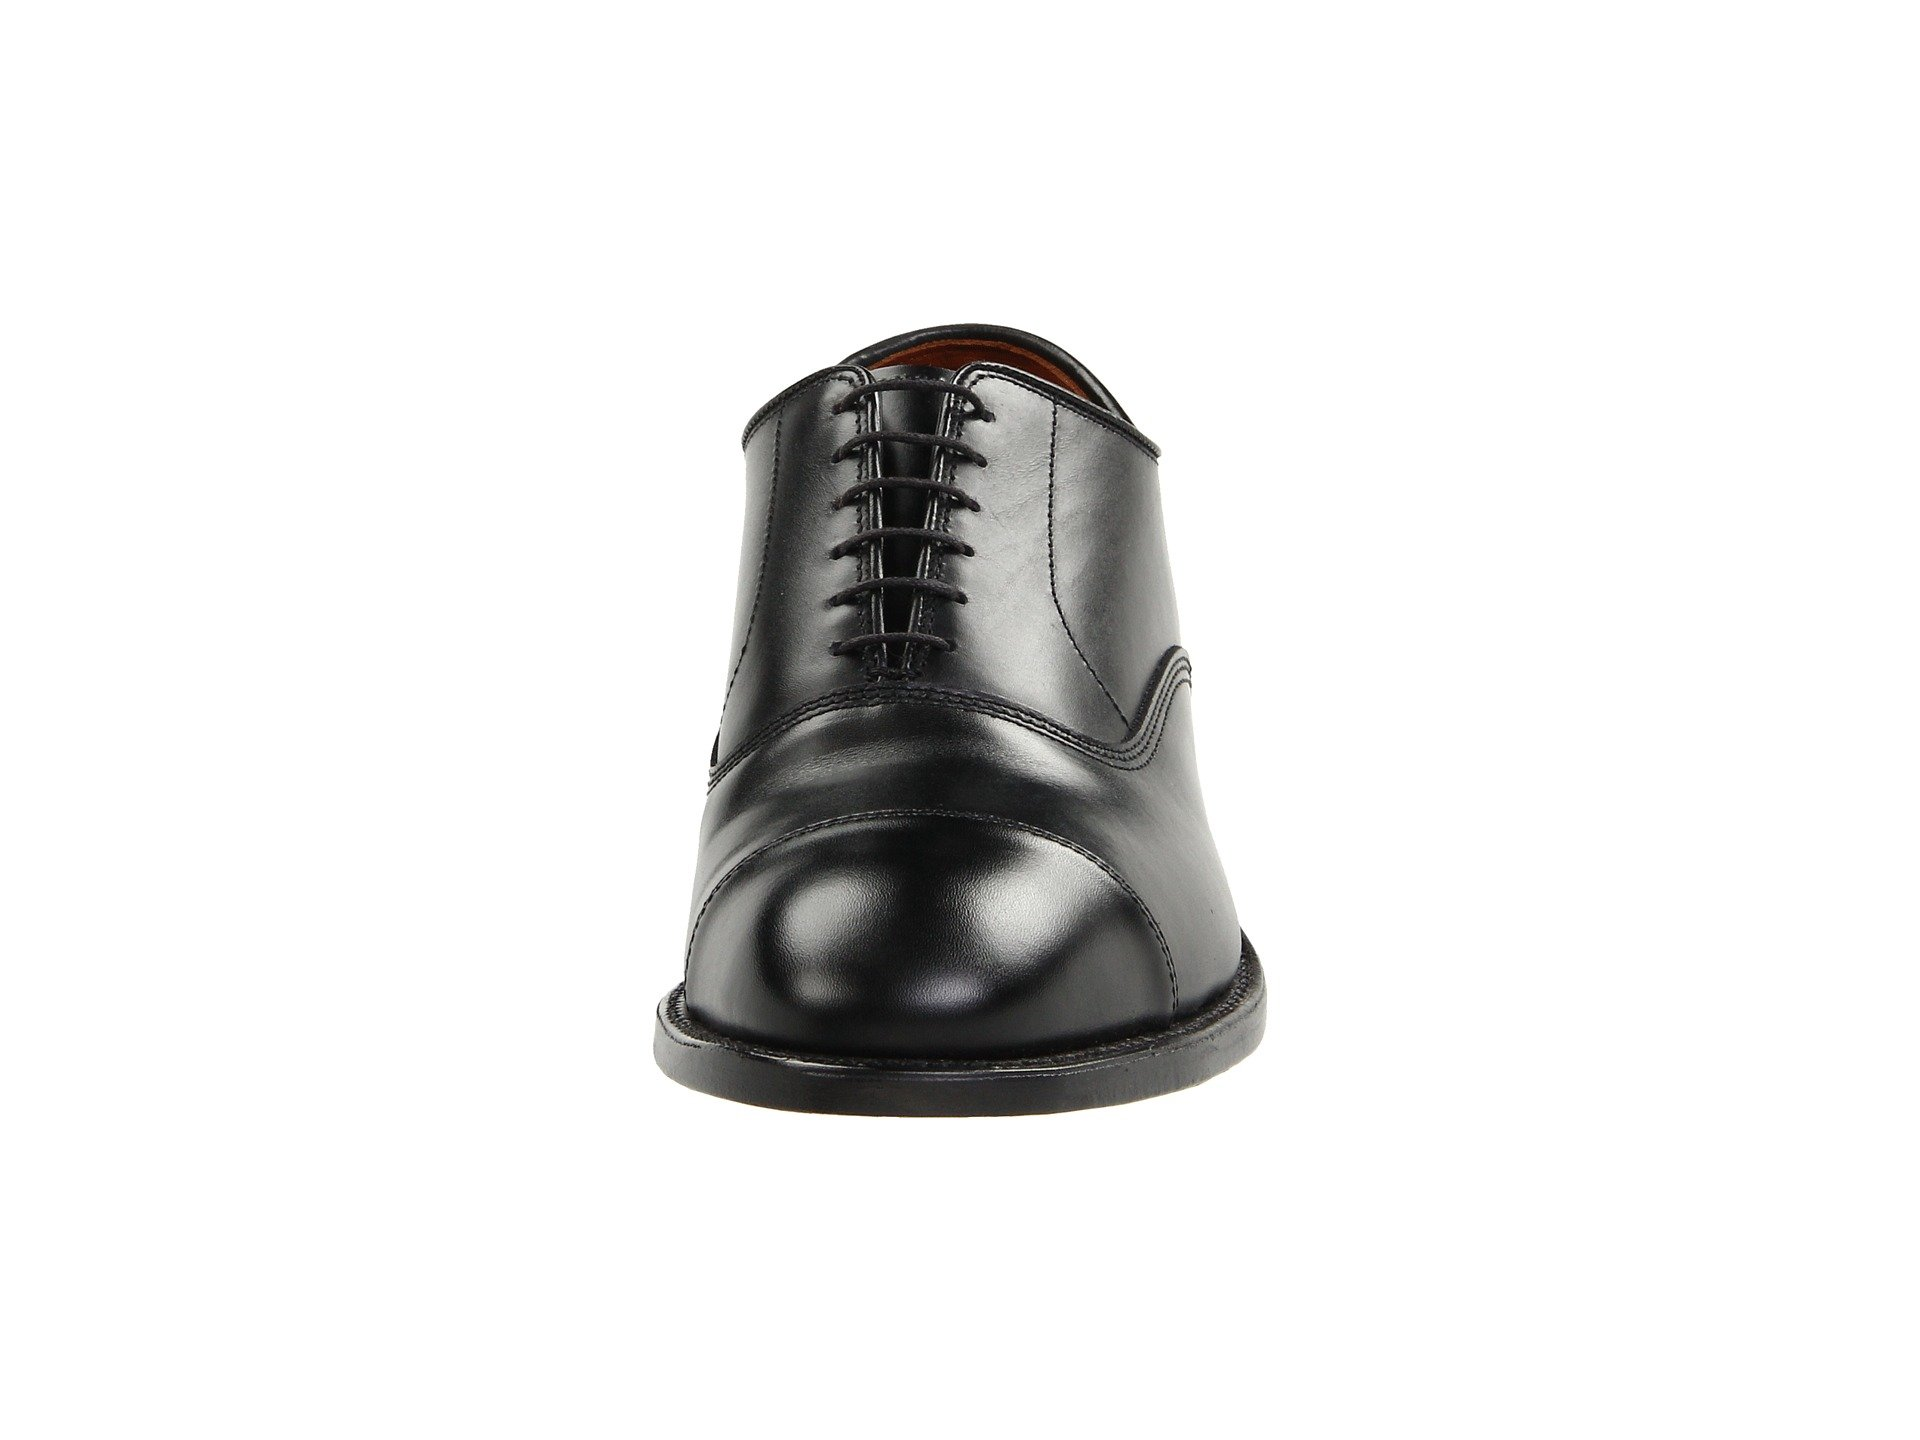 Zappos - Allen Edmonds Park Avenue (Black) + Free Shipping $229.50